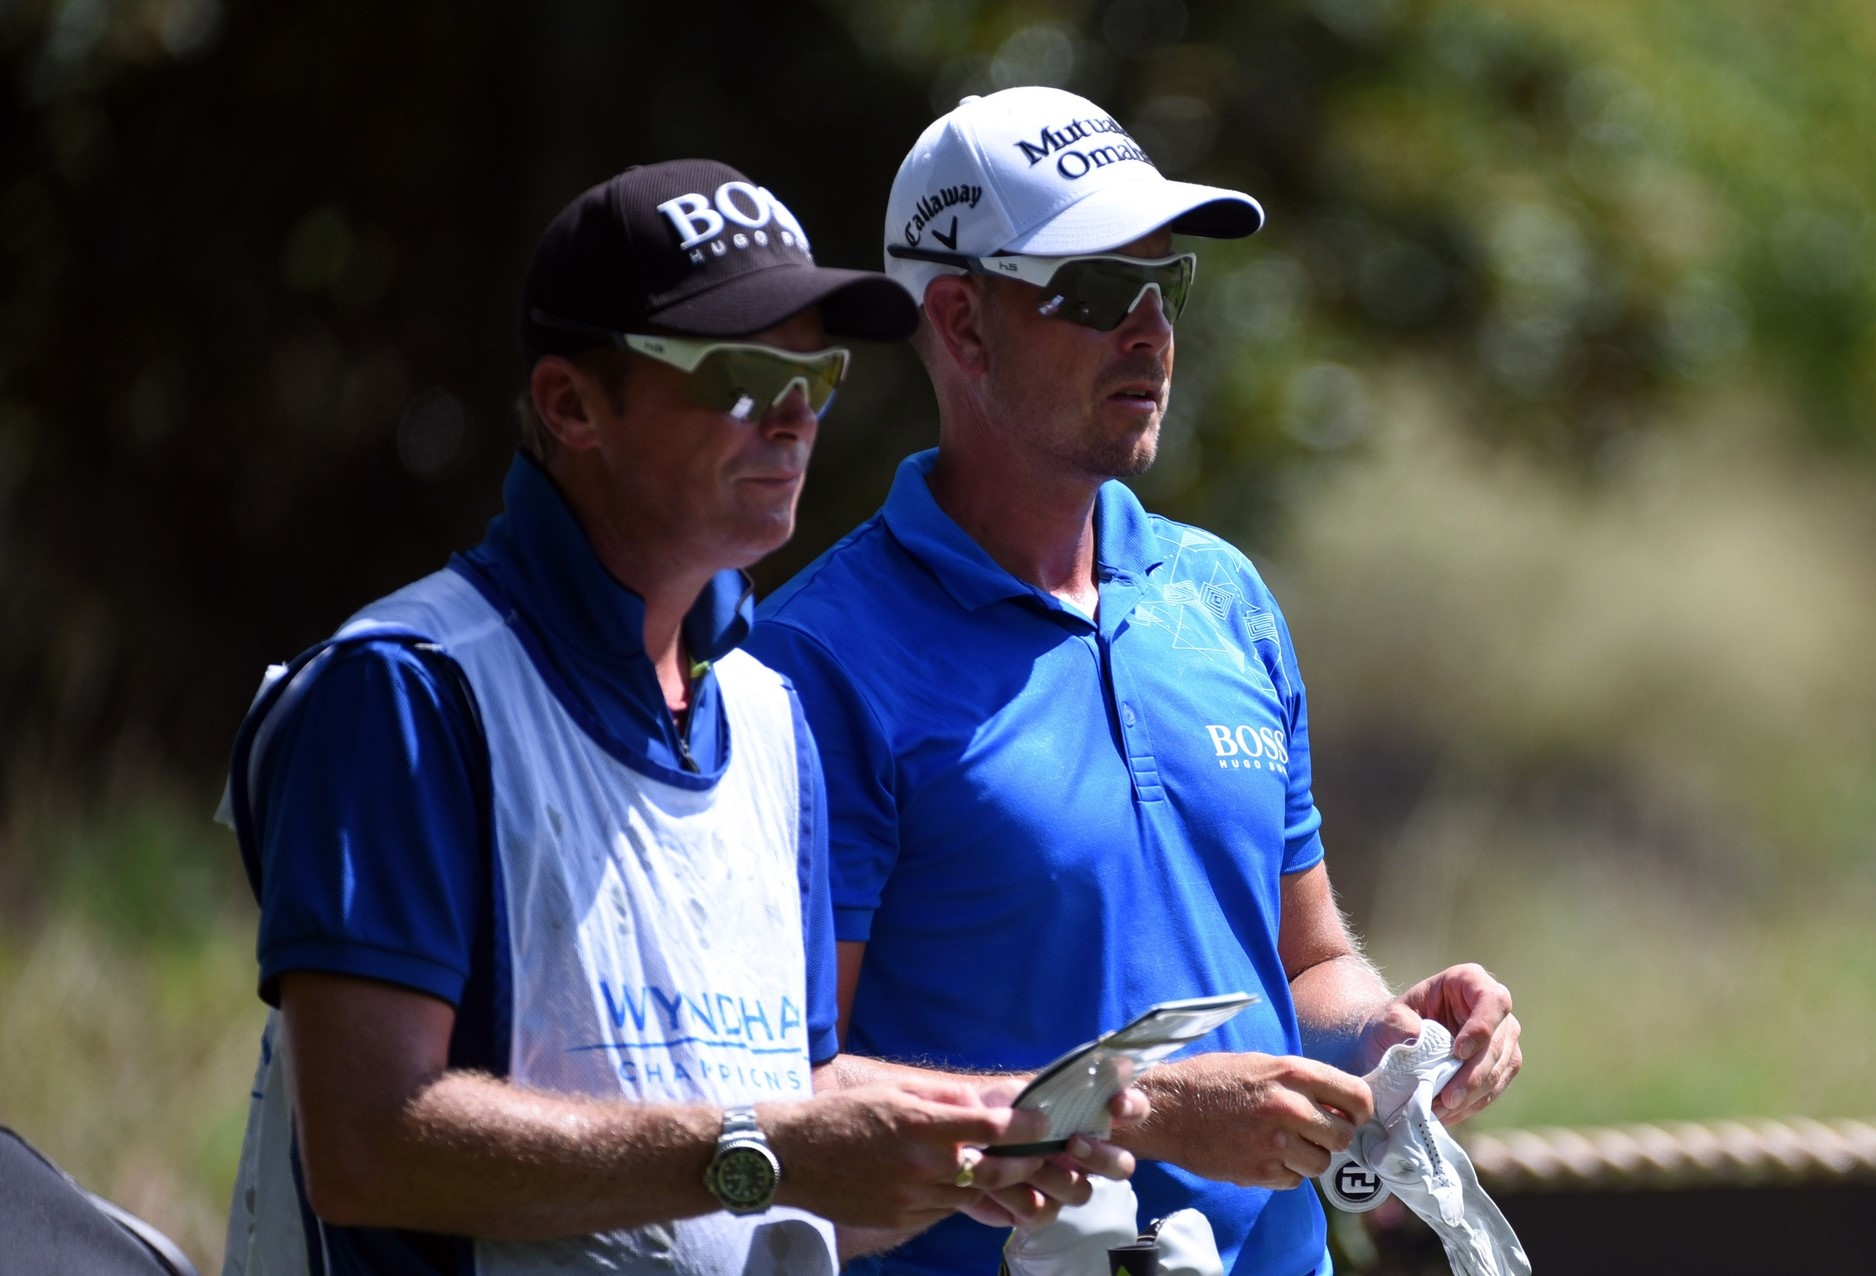 Wyndham Championship: Stenson's start makes him solid favorite article feature image